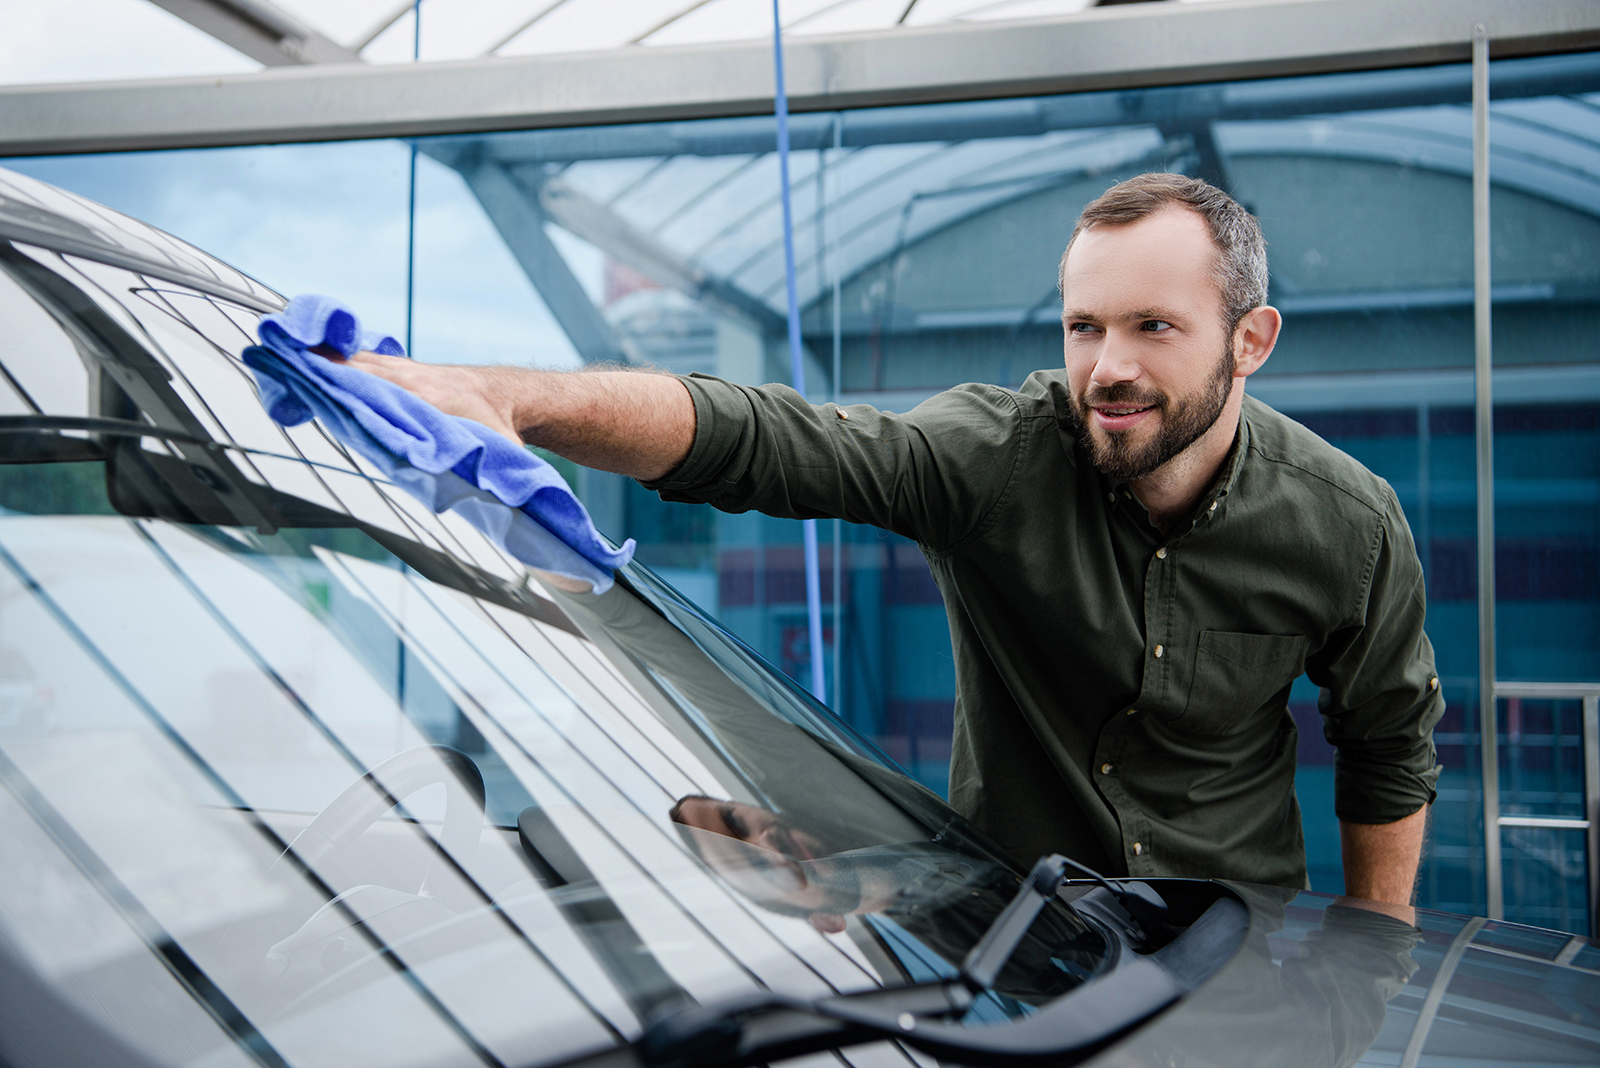 Man wiping the car wind shield with a cloth.